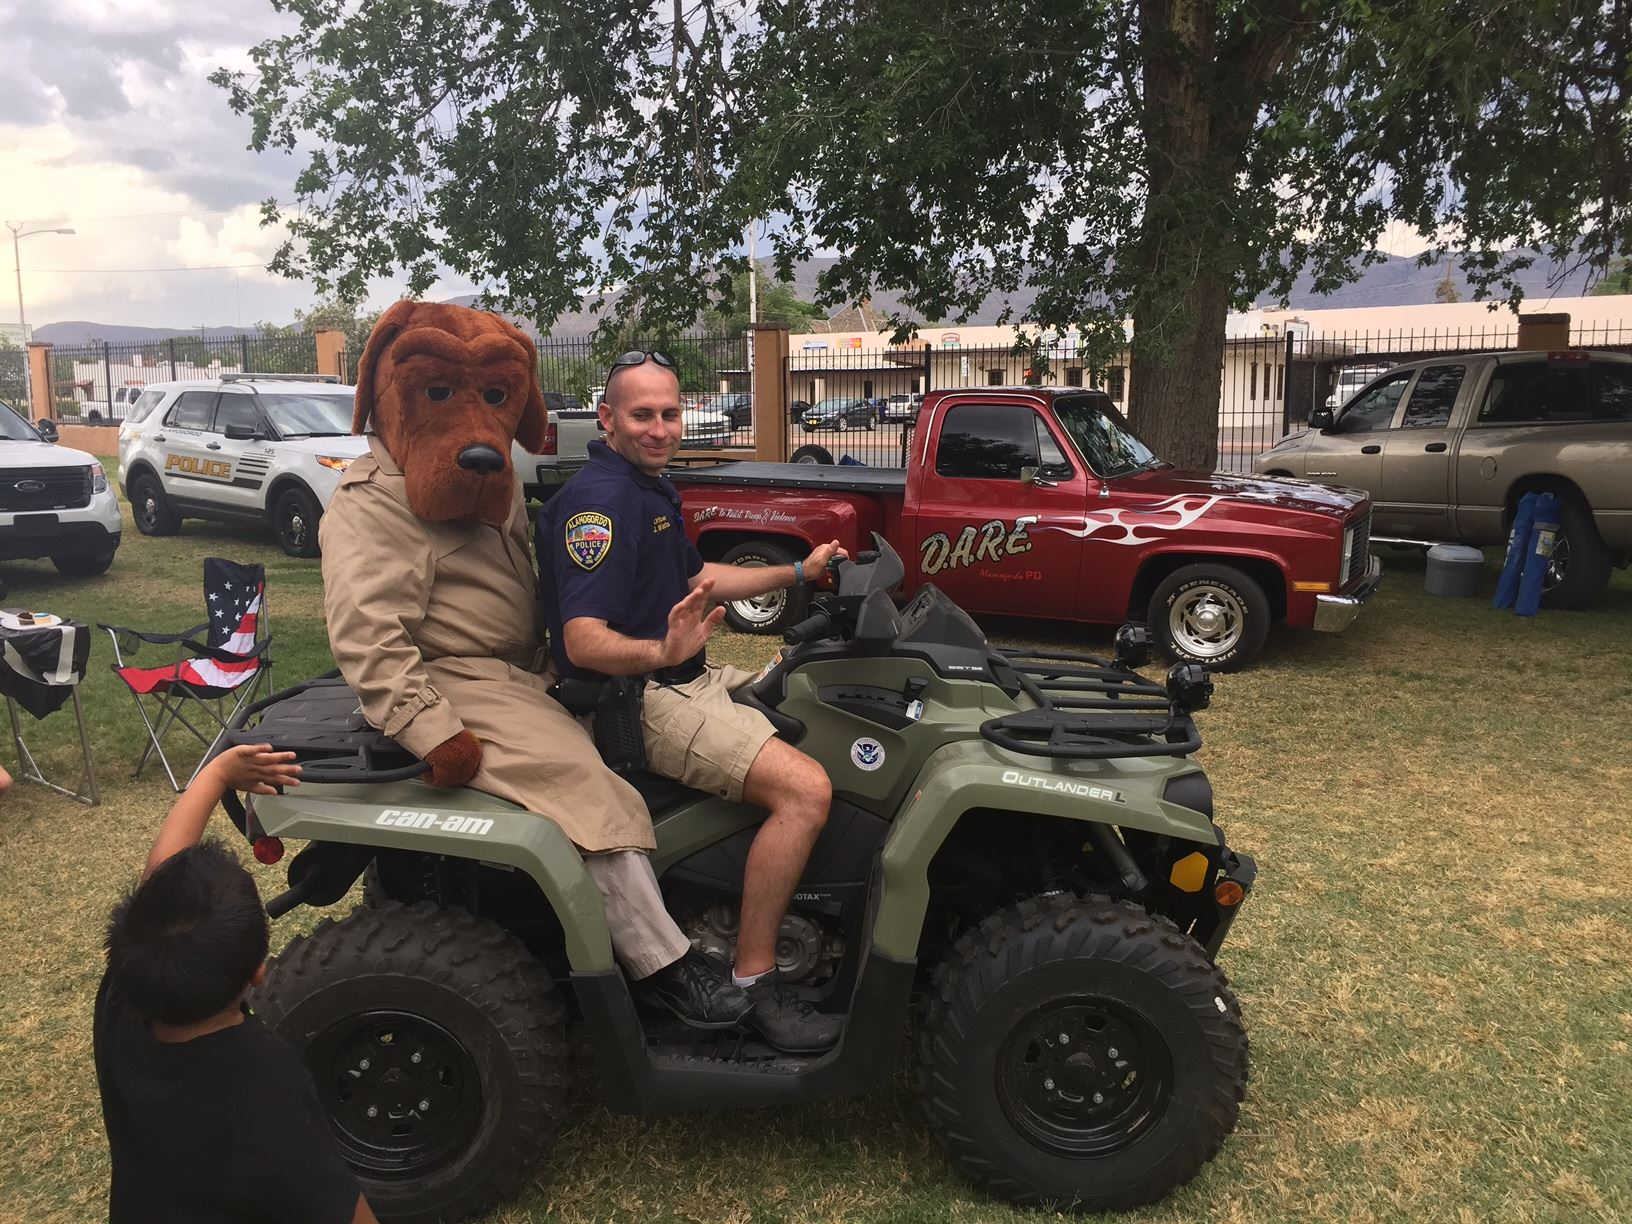 DARE McGruff the Crime Dog on Four Wheeler with APD officer